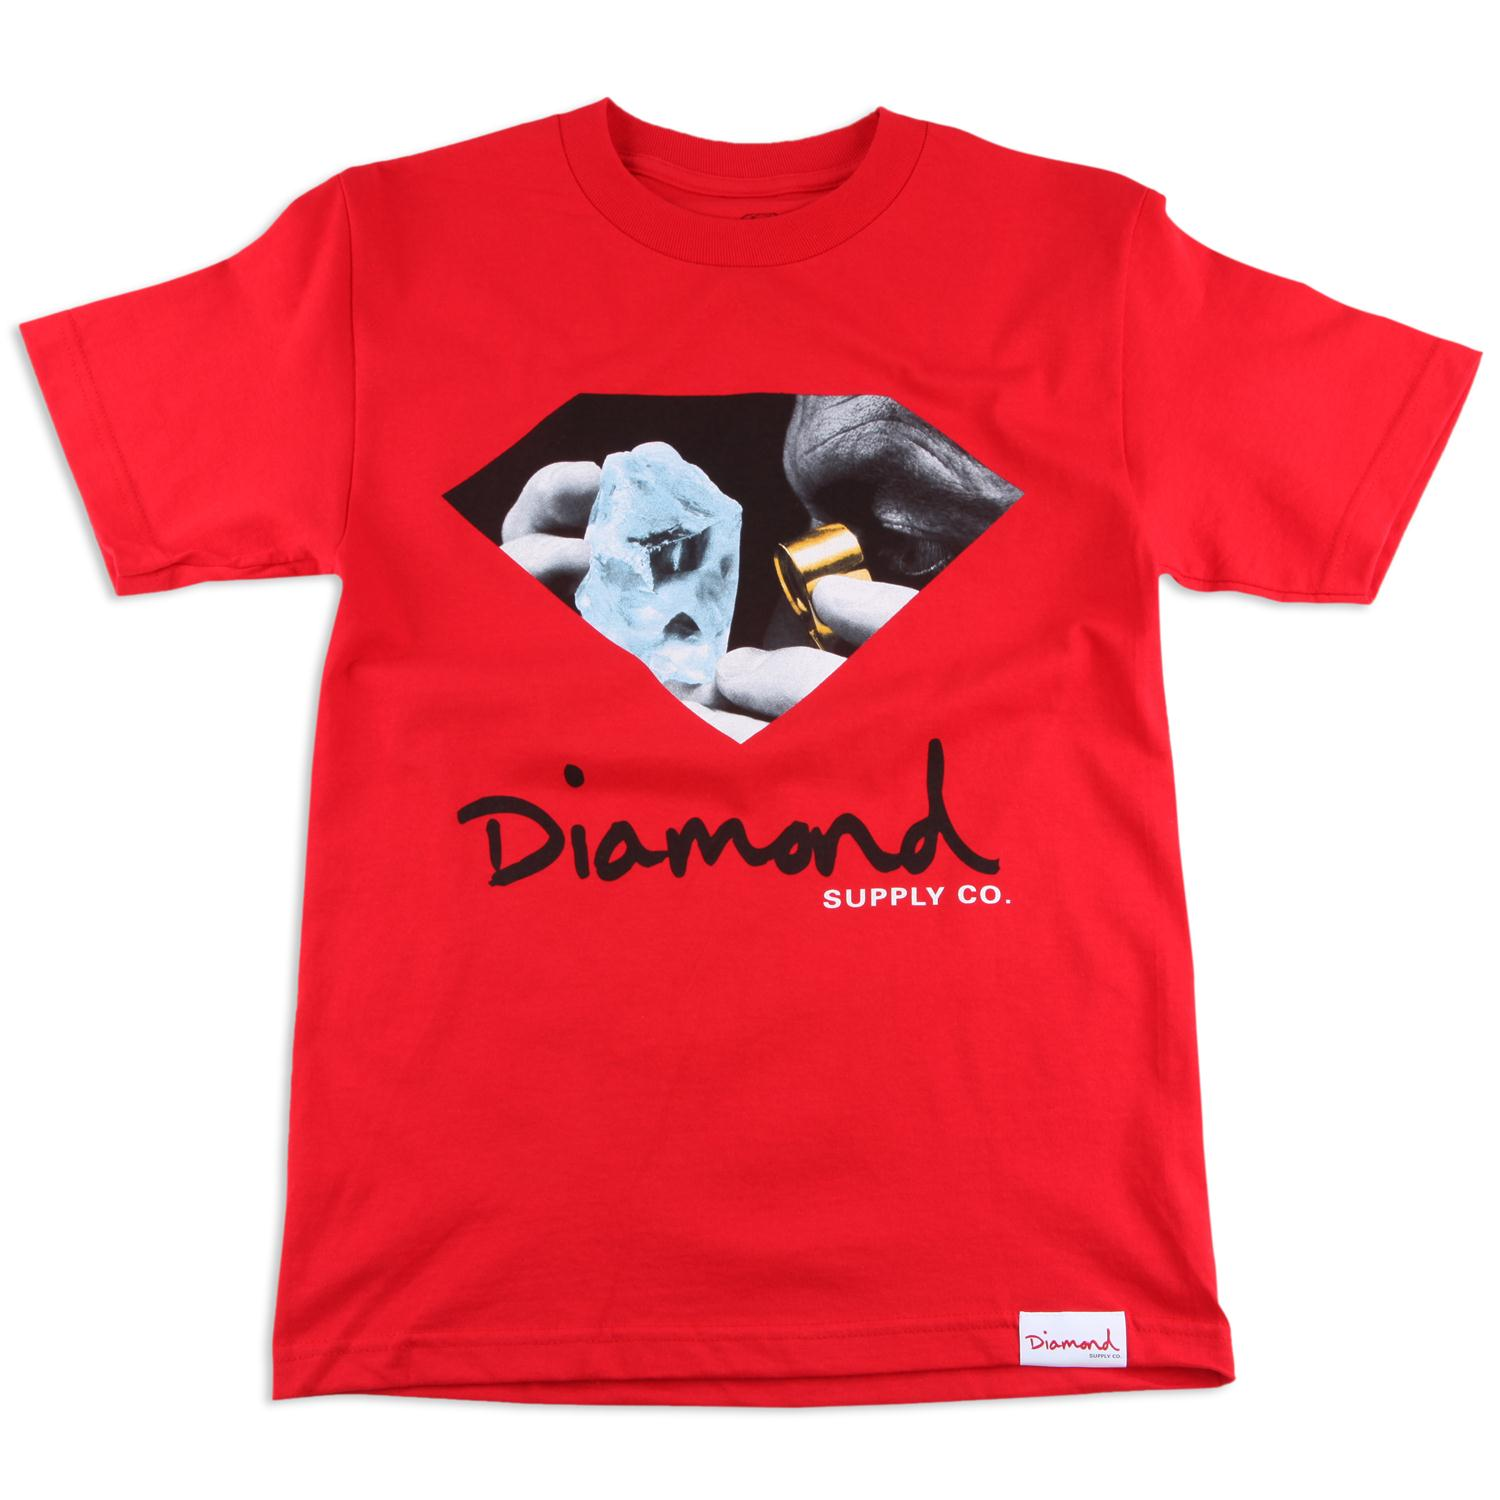 Diamond supply co clothing jumpers sale for The red t shirt company